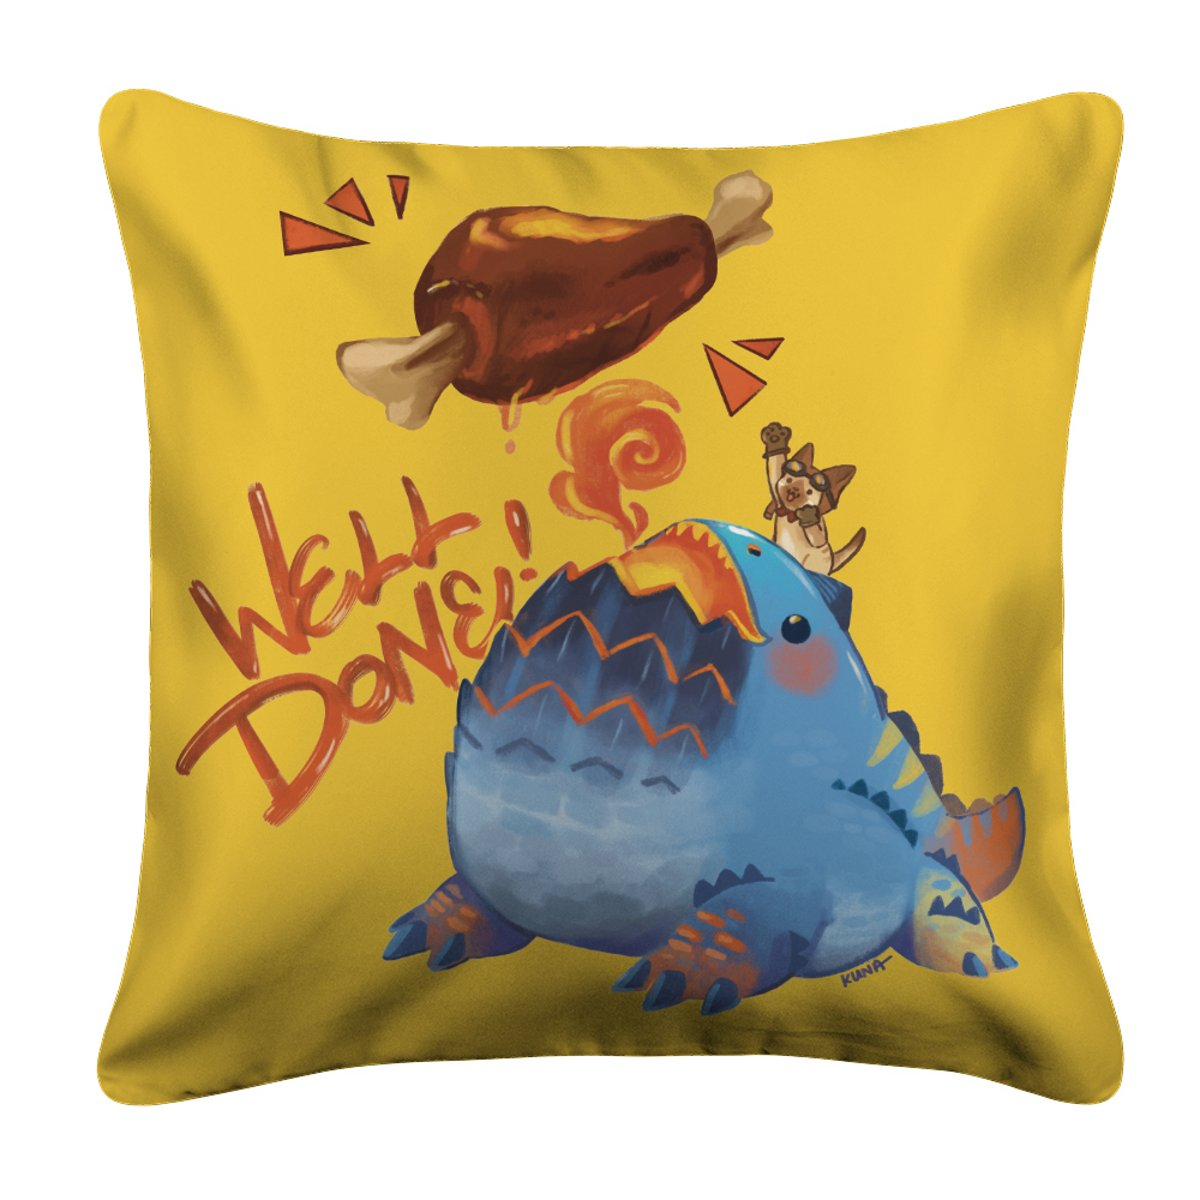 Dodogama Well Done! Pillow Case